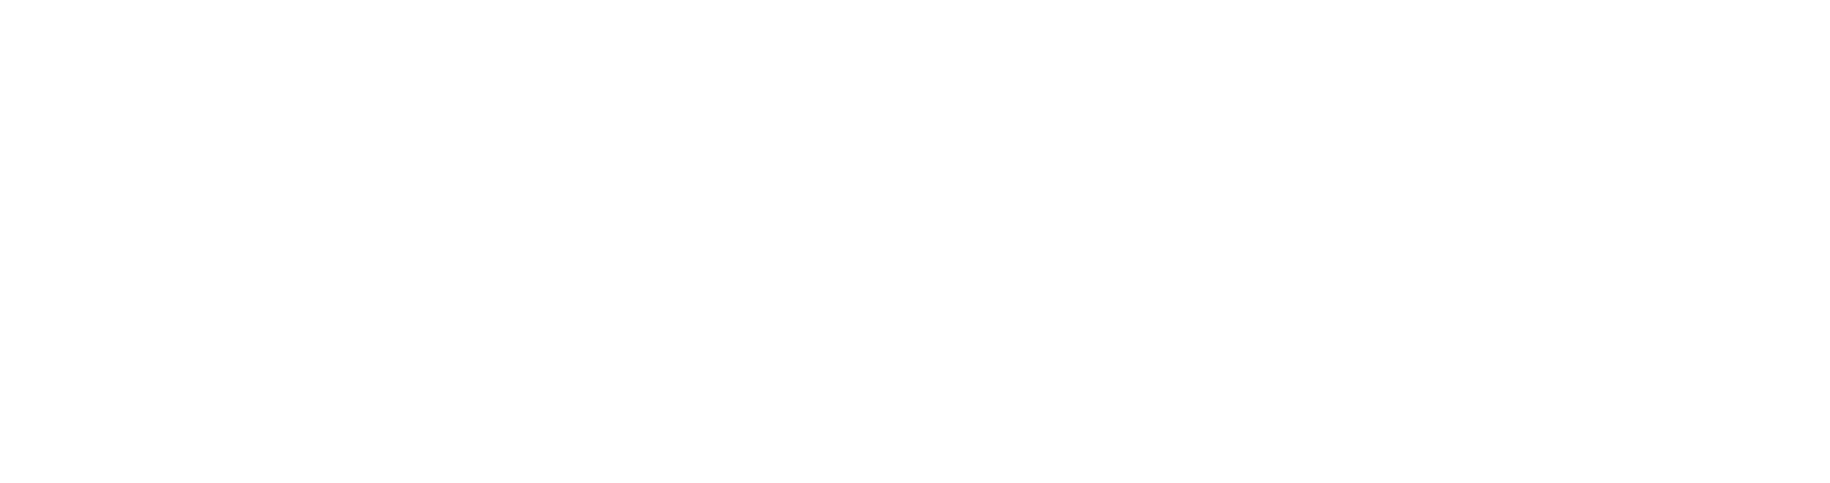 Arrowfinch Technologies- IOT/ Industrial Automation Solutions and Field Instrumentation